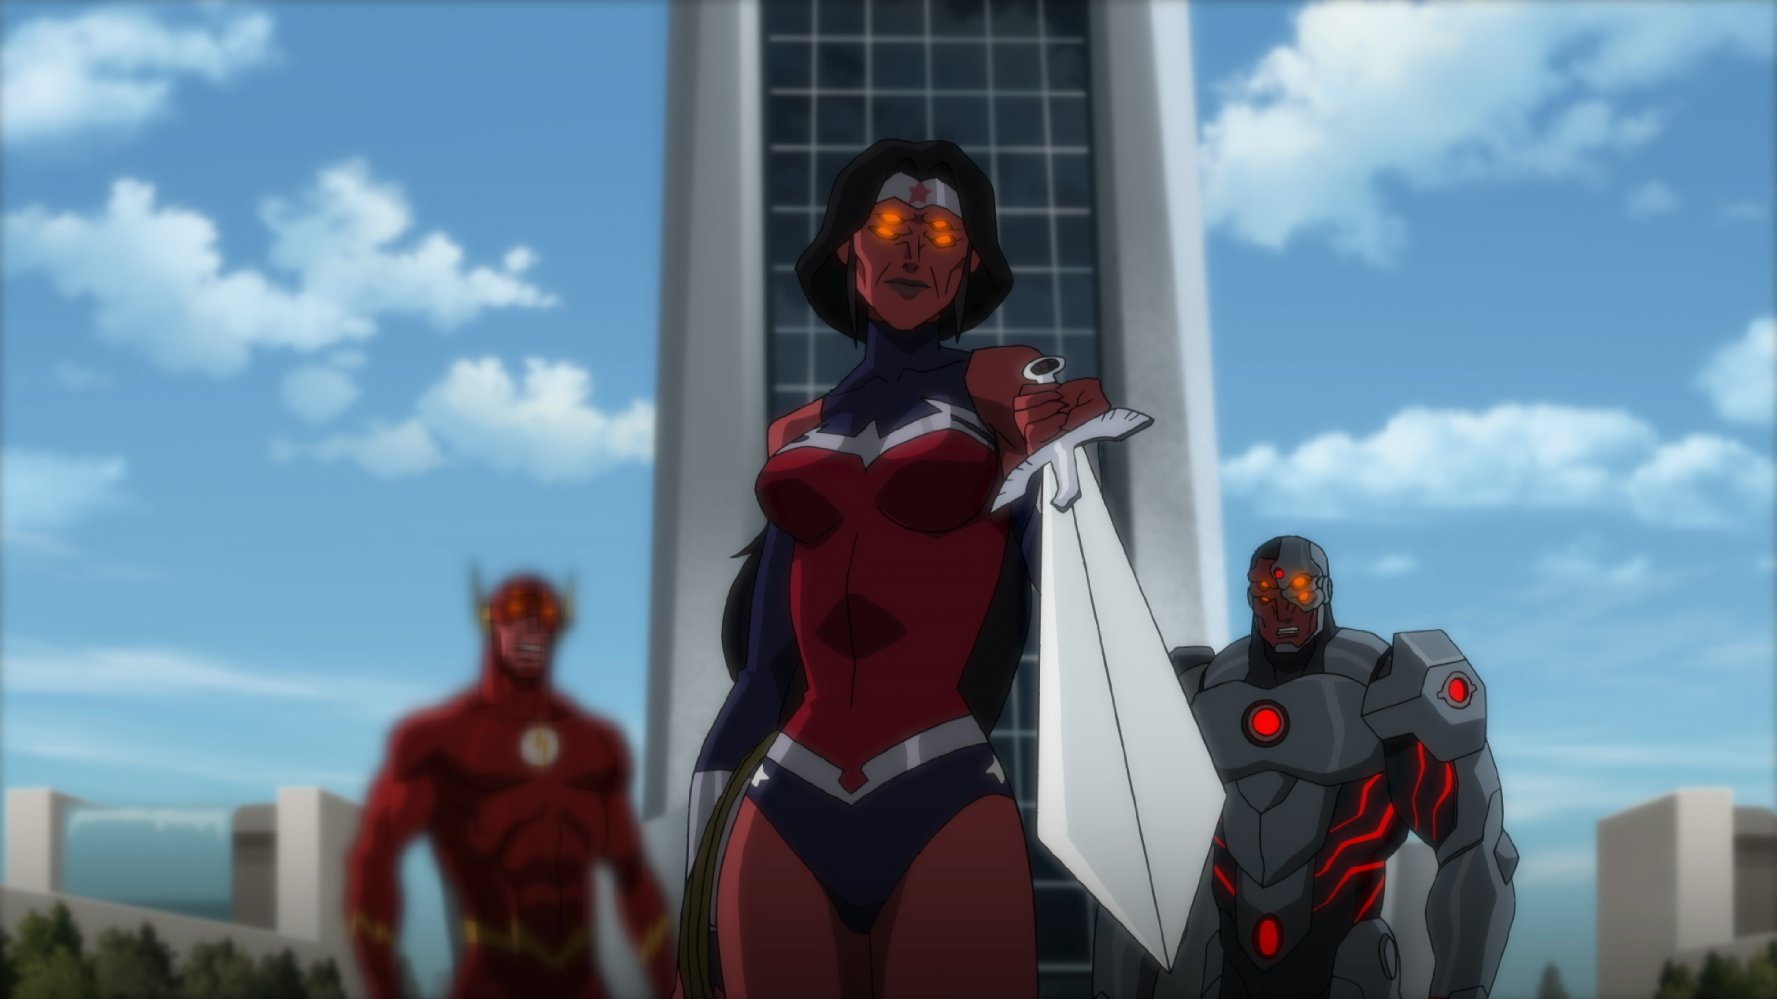 Justice League Vs Teen Titans 2016 Full Movie Watch In Hd -6060